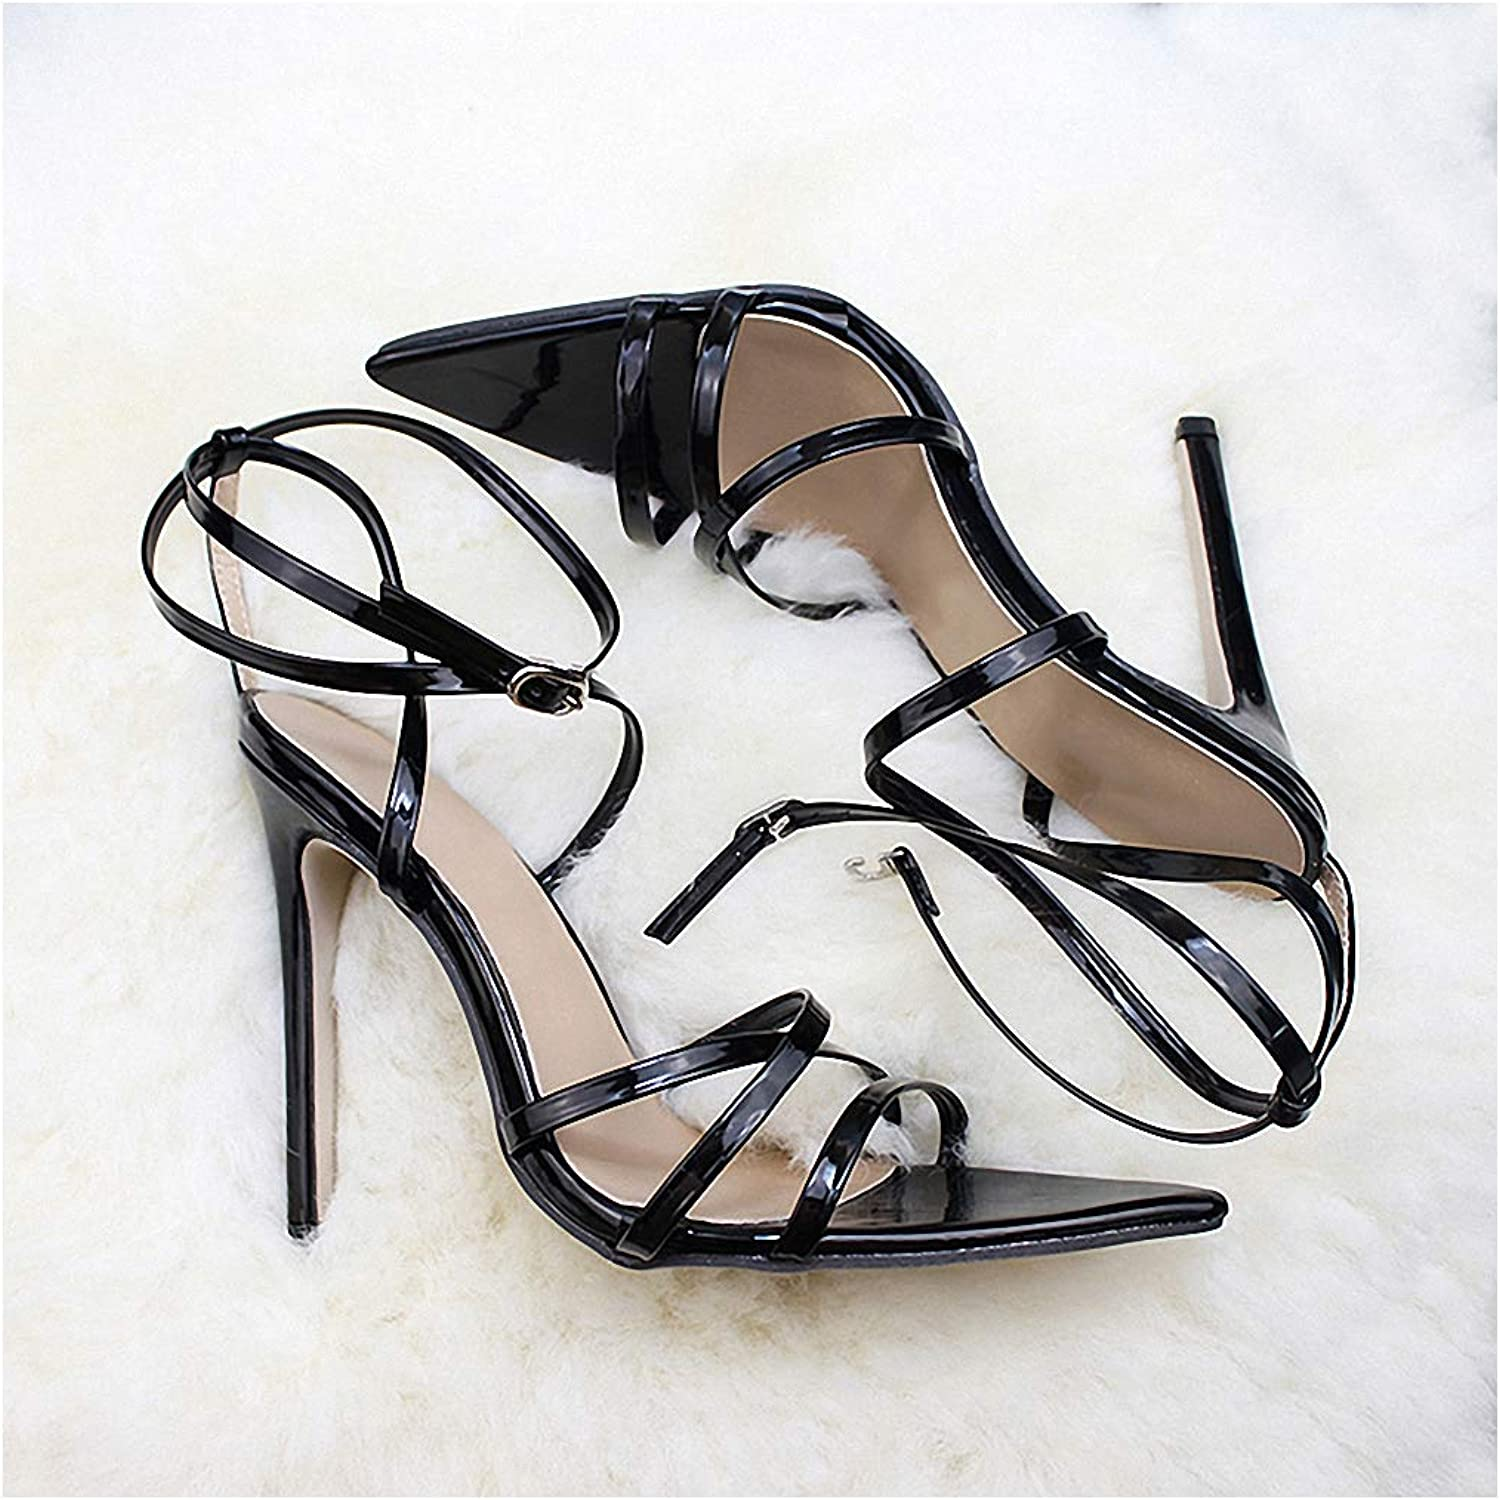 Womens High-Heeled Pumps shoes Super High 11.5cm Thin Heels Women Pumps Ankle Cross Strap Sandals shoes Woman Ladies Pointed Toe High Heels Dress Party shoes